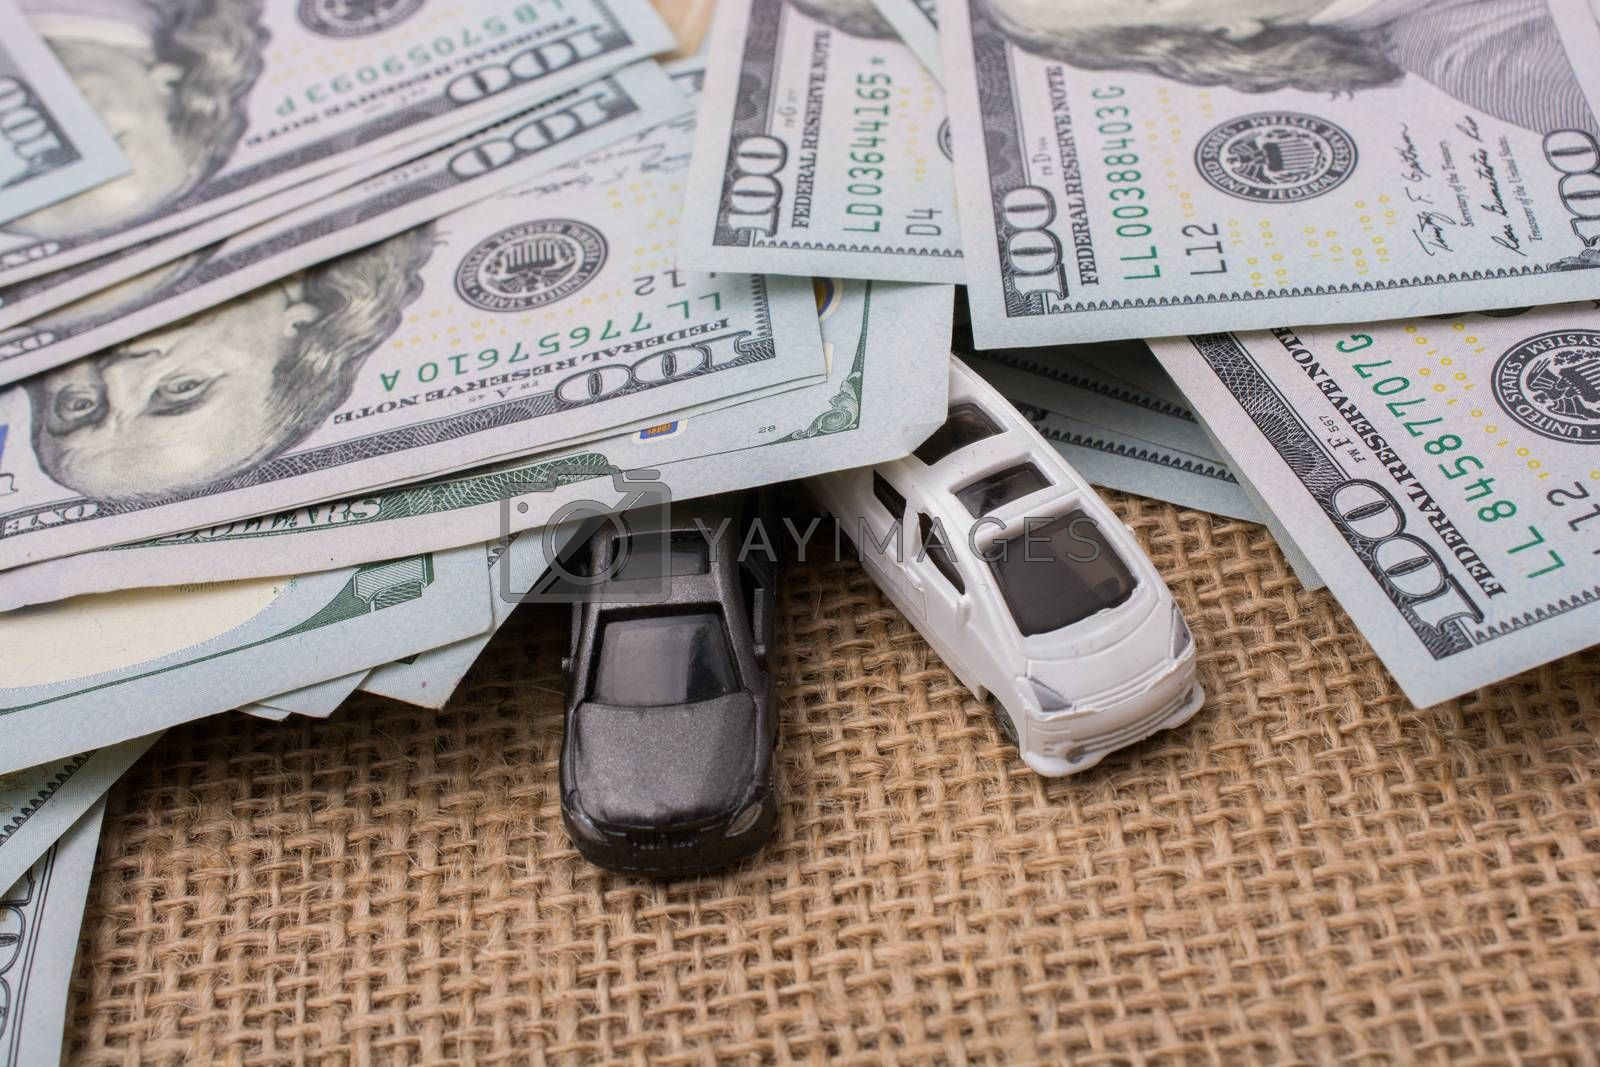 Model cars covered by US dollar banknotes spread on ground